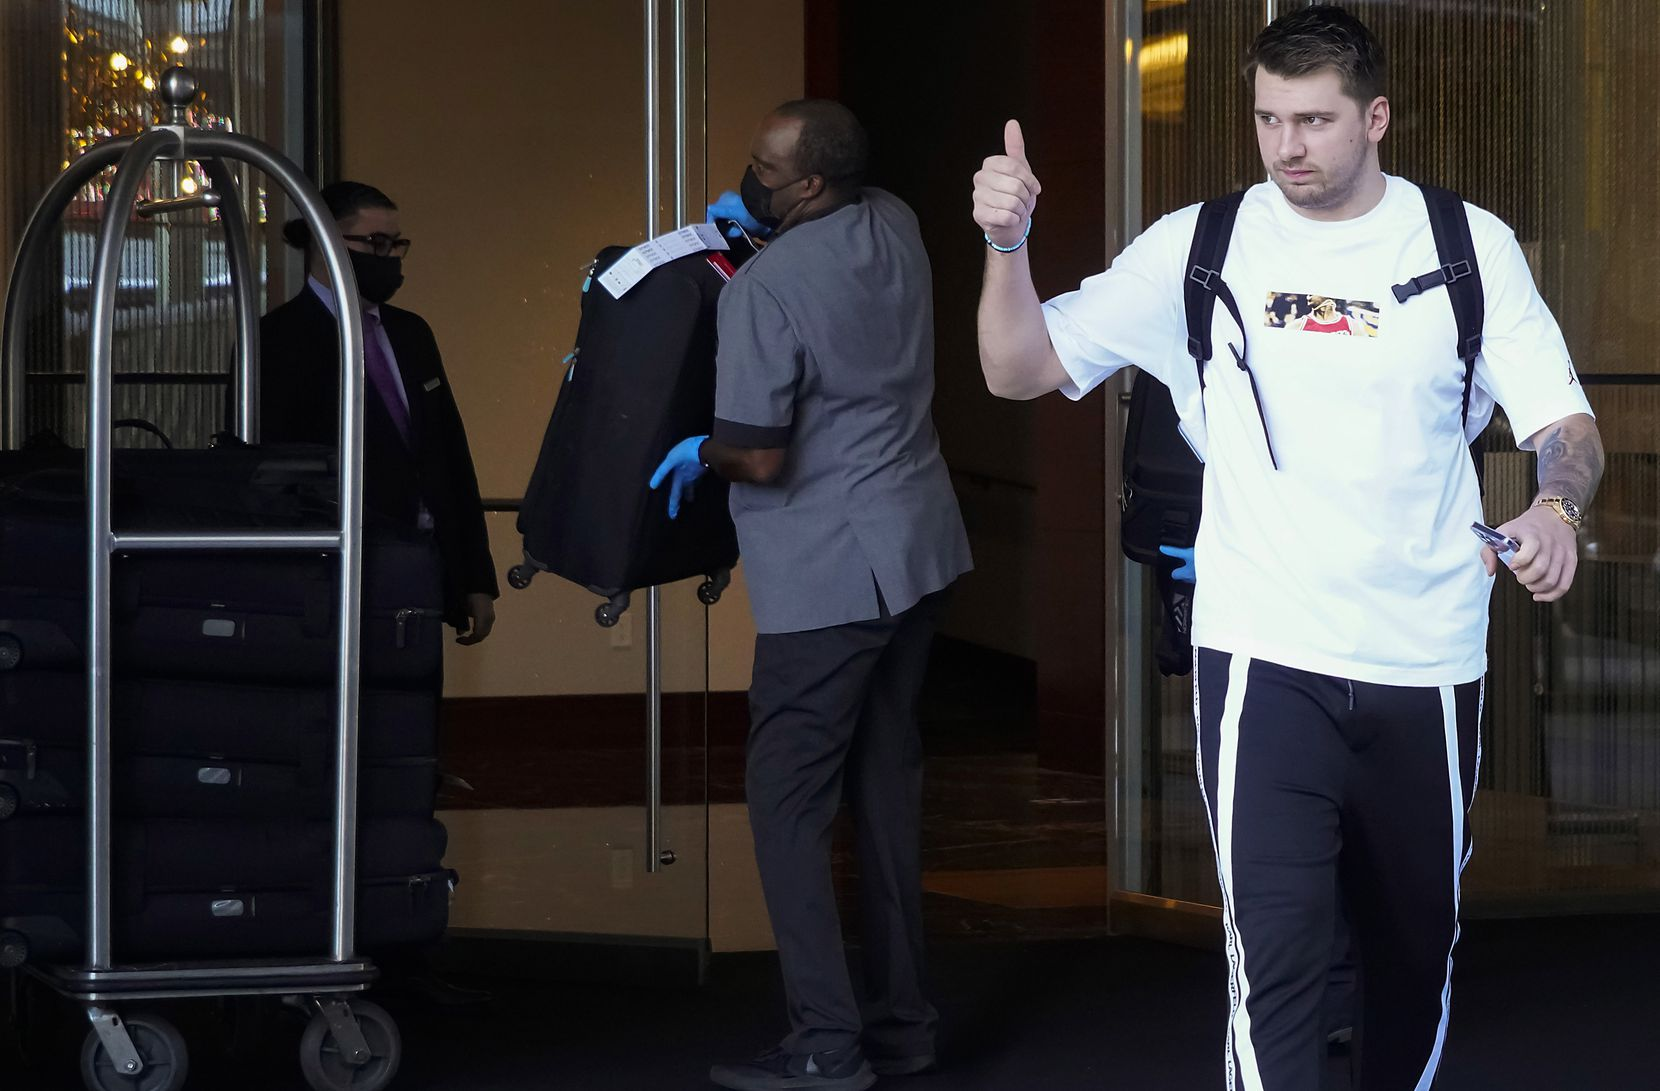 Dallas Mavericks guard Luka Doncic gives a thumbs up to fans as the team leaves their hotel before Game 7 of an NBA playoff basketball series against the LA Clippers at the Staples Center on Sunday, June 6, 2021, in Los Angeles.